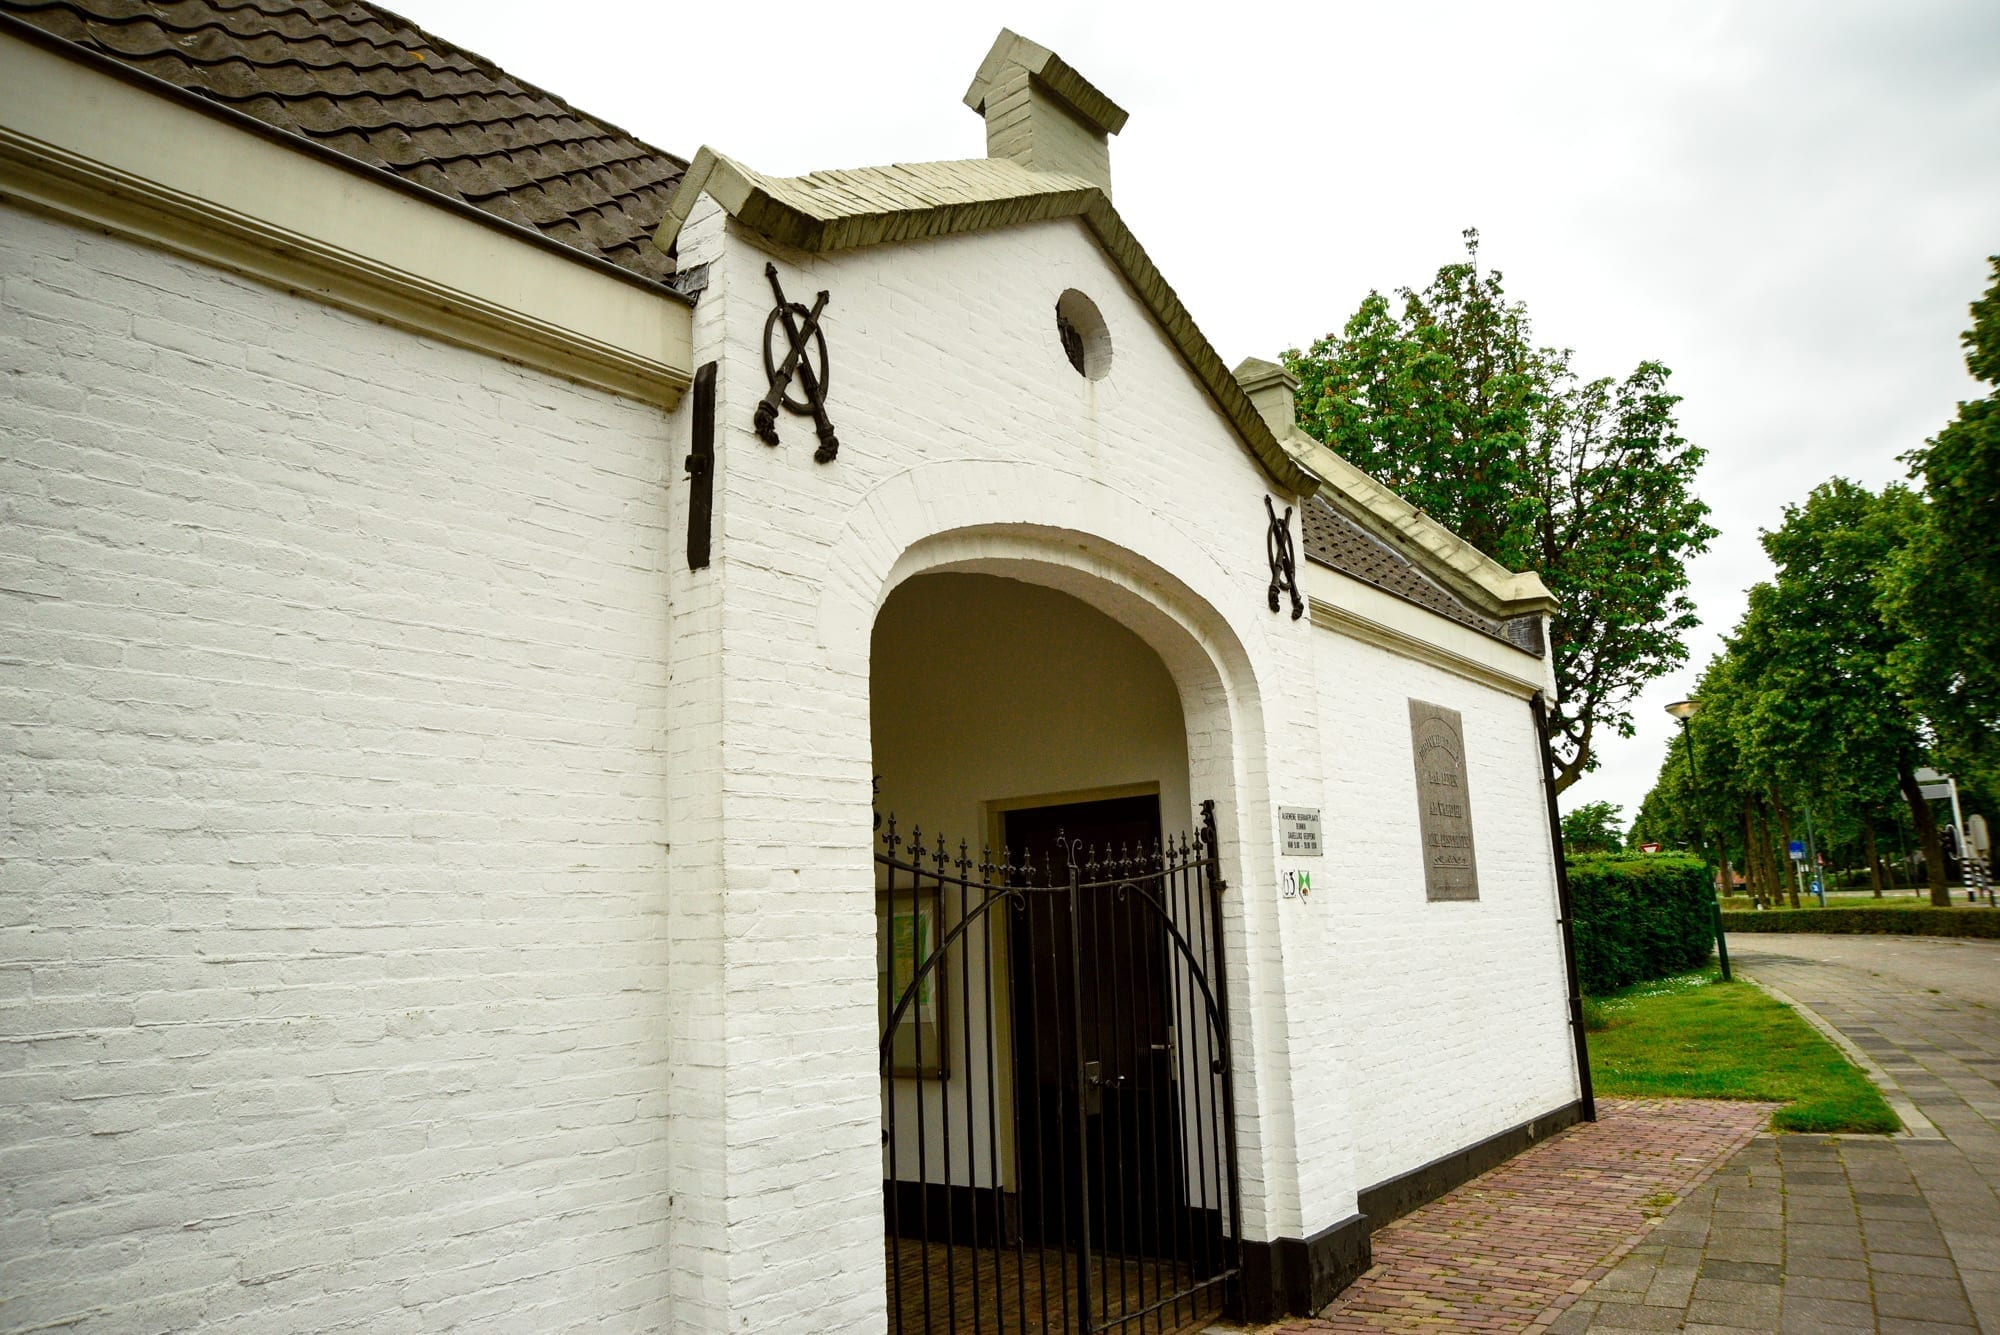 white building with a curved entry